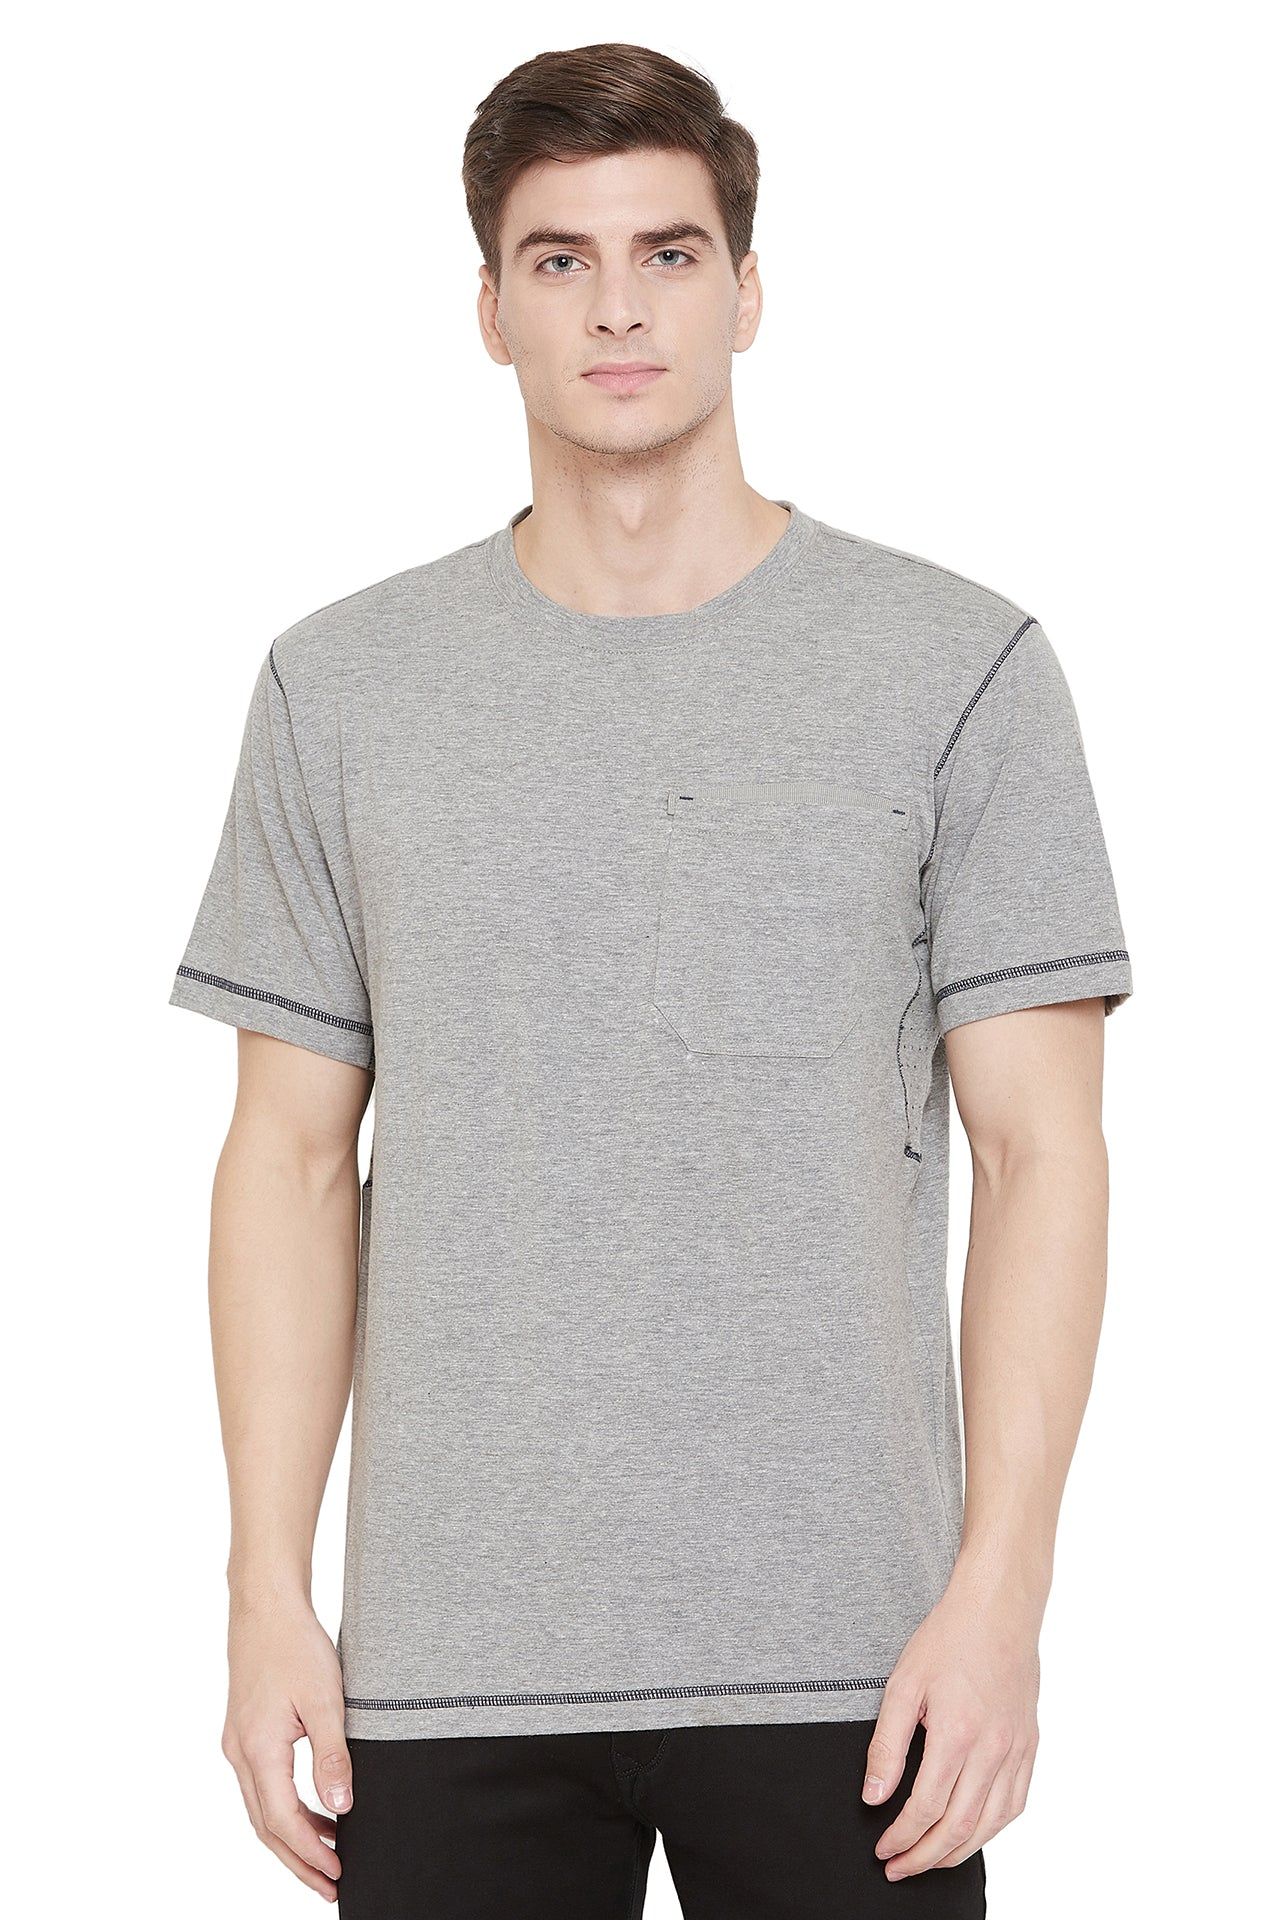 TuffRider Men's Voltage Short Sleeve Tee_1